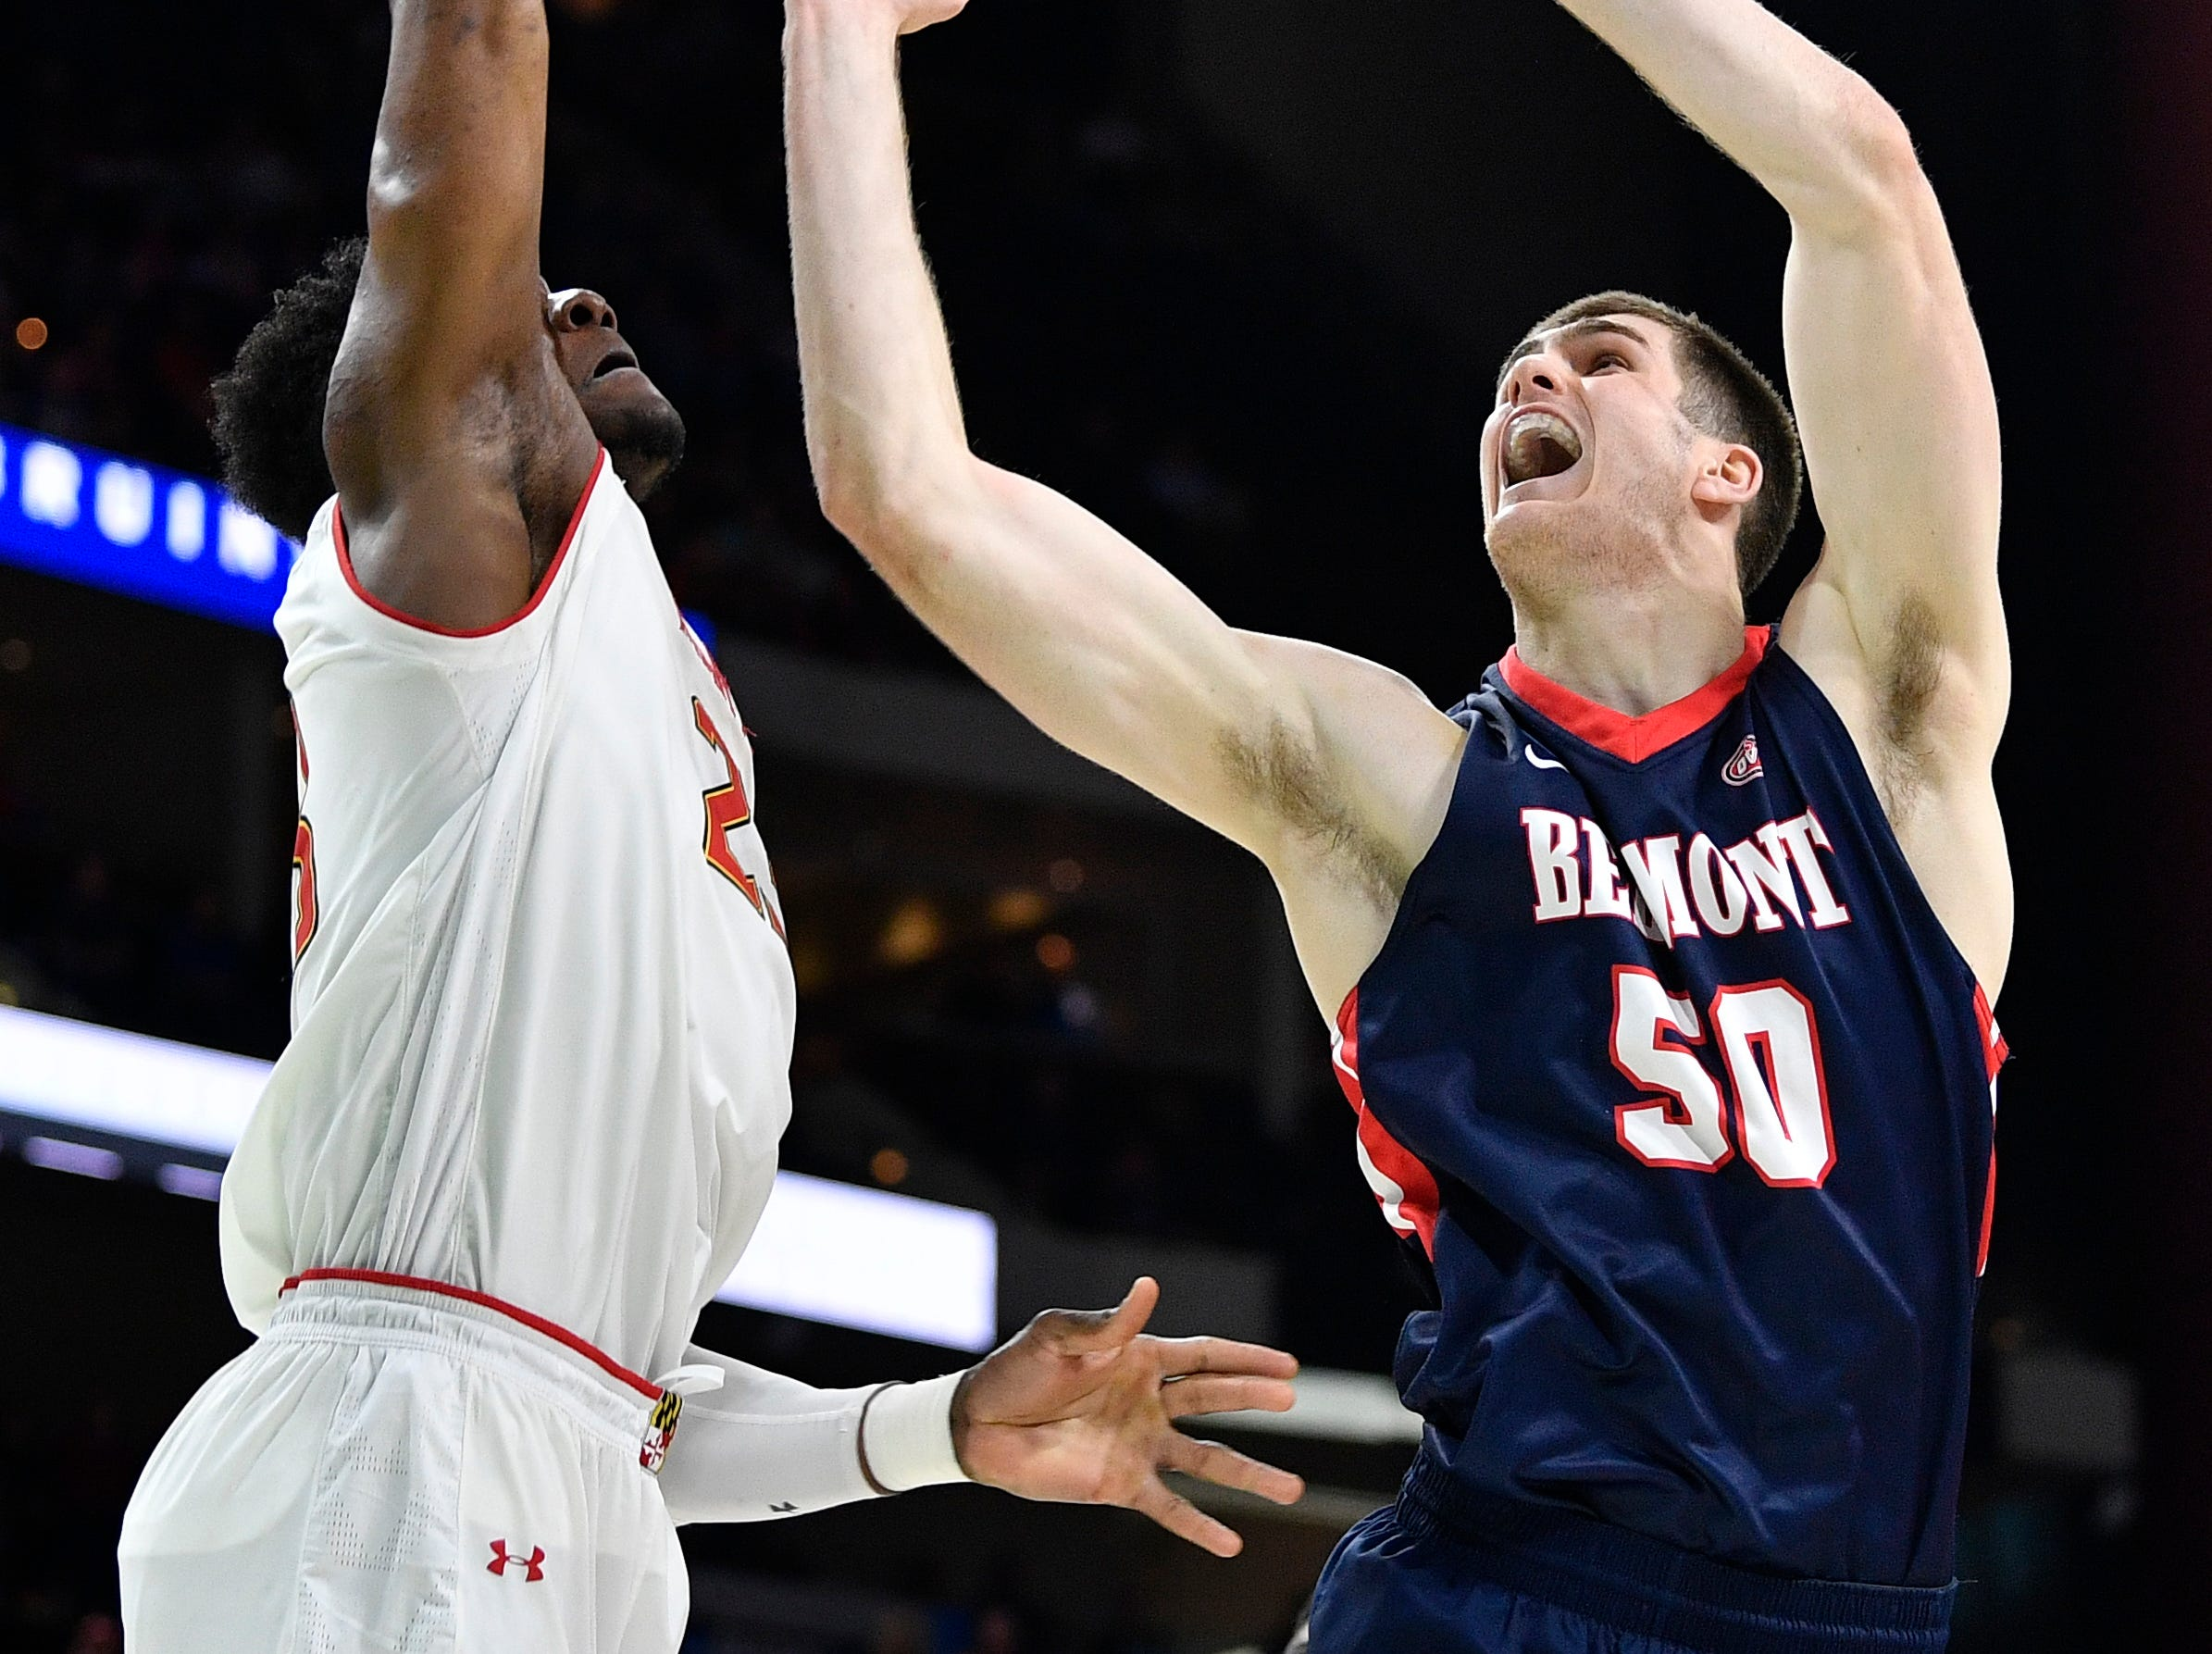 Maryland forward Bruno Fernando (23) blocks Belmont center Seth Adelsperger (50) during the second half of the first-round NCAA college basketball tournament game at VyStar Veterans Memorial Arena in Jacksonville, Fla., Thursday, March 21, 2019.